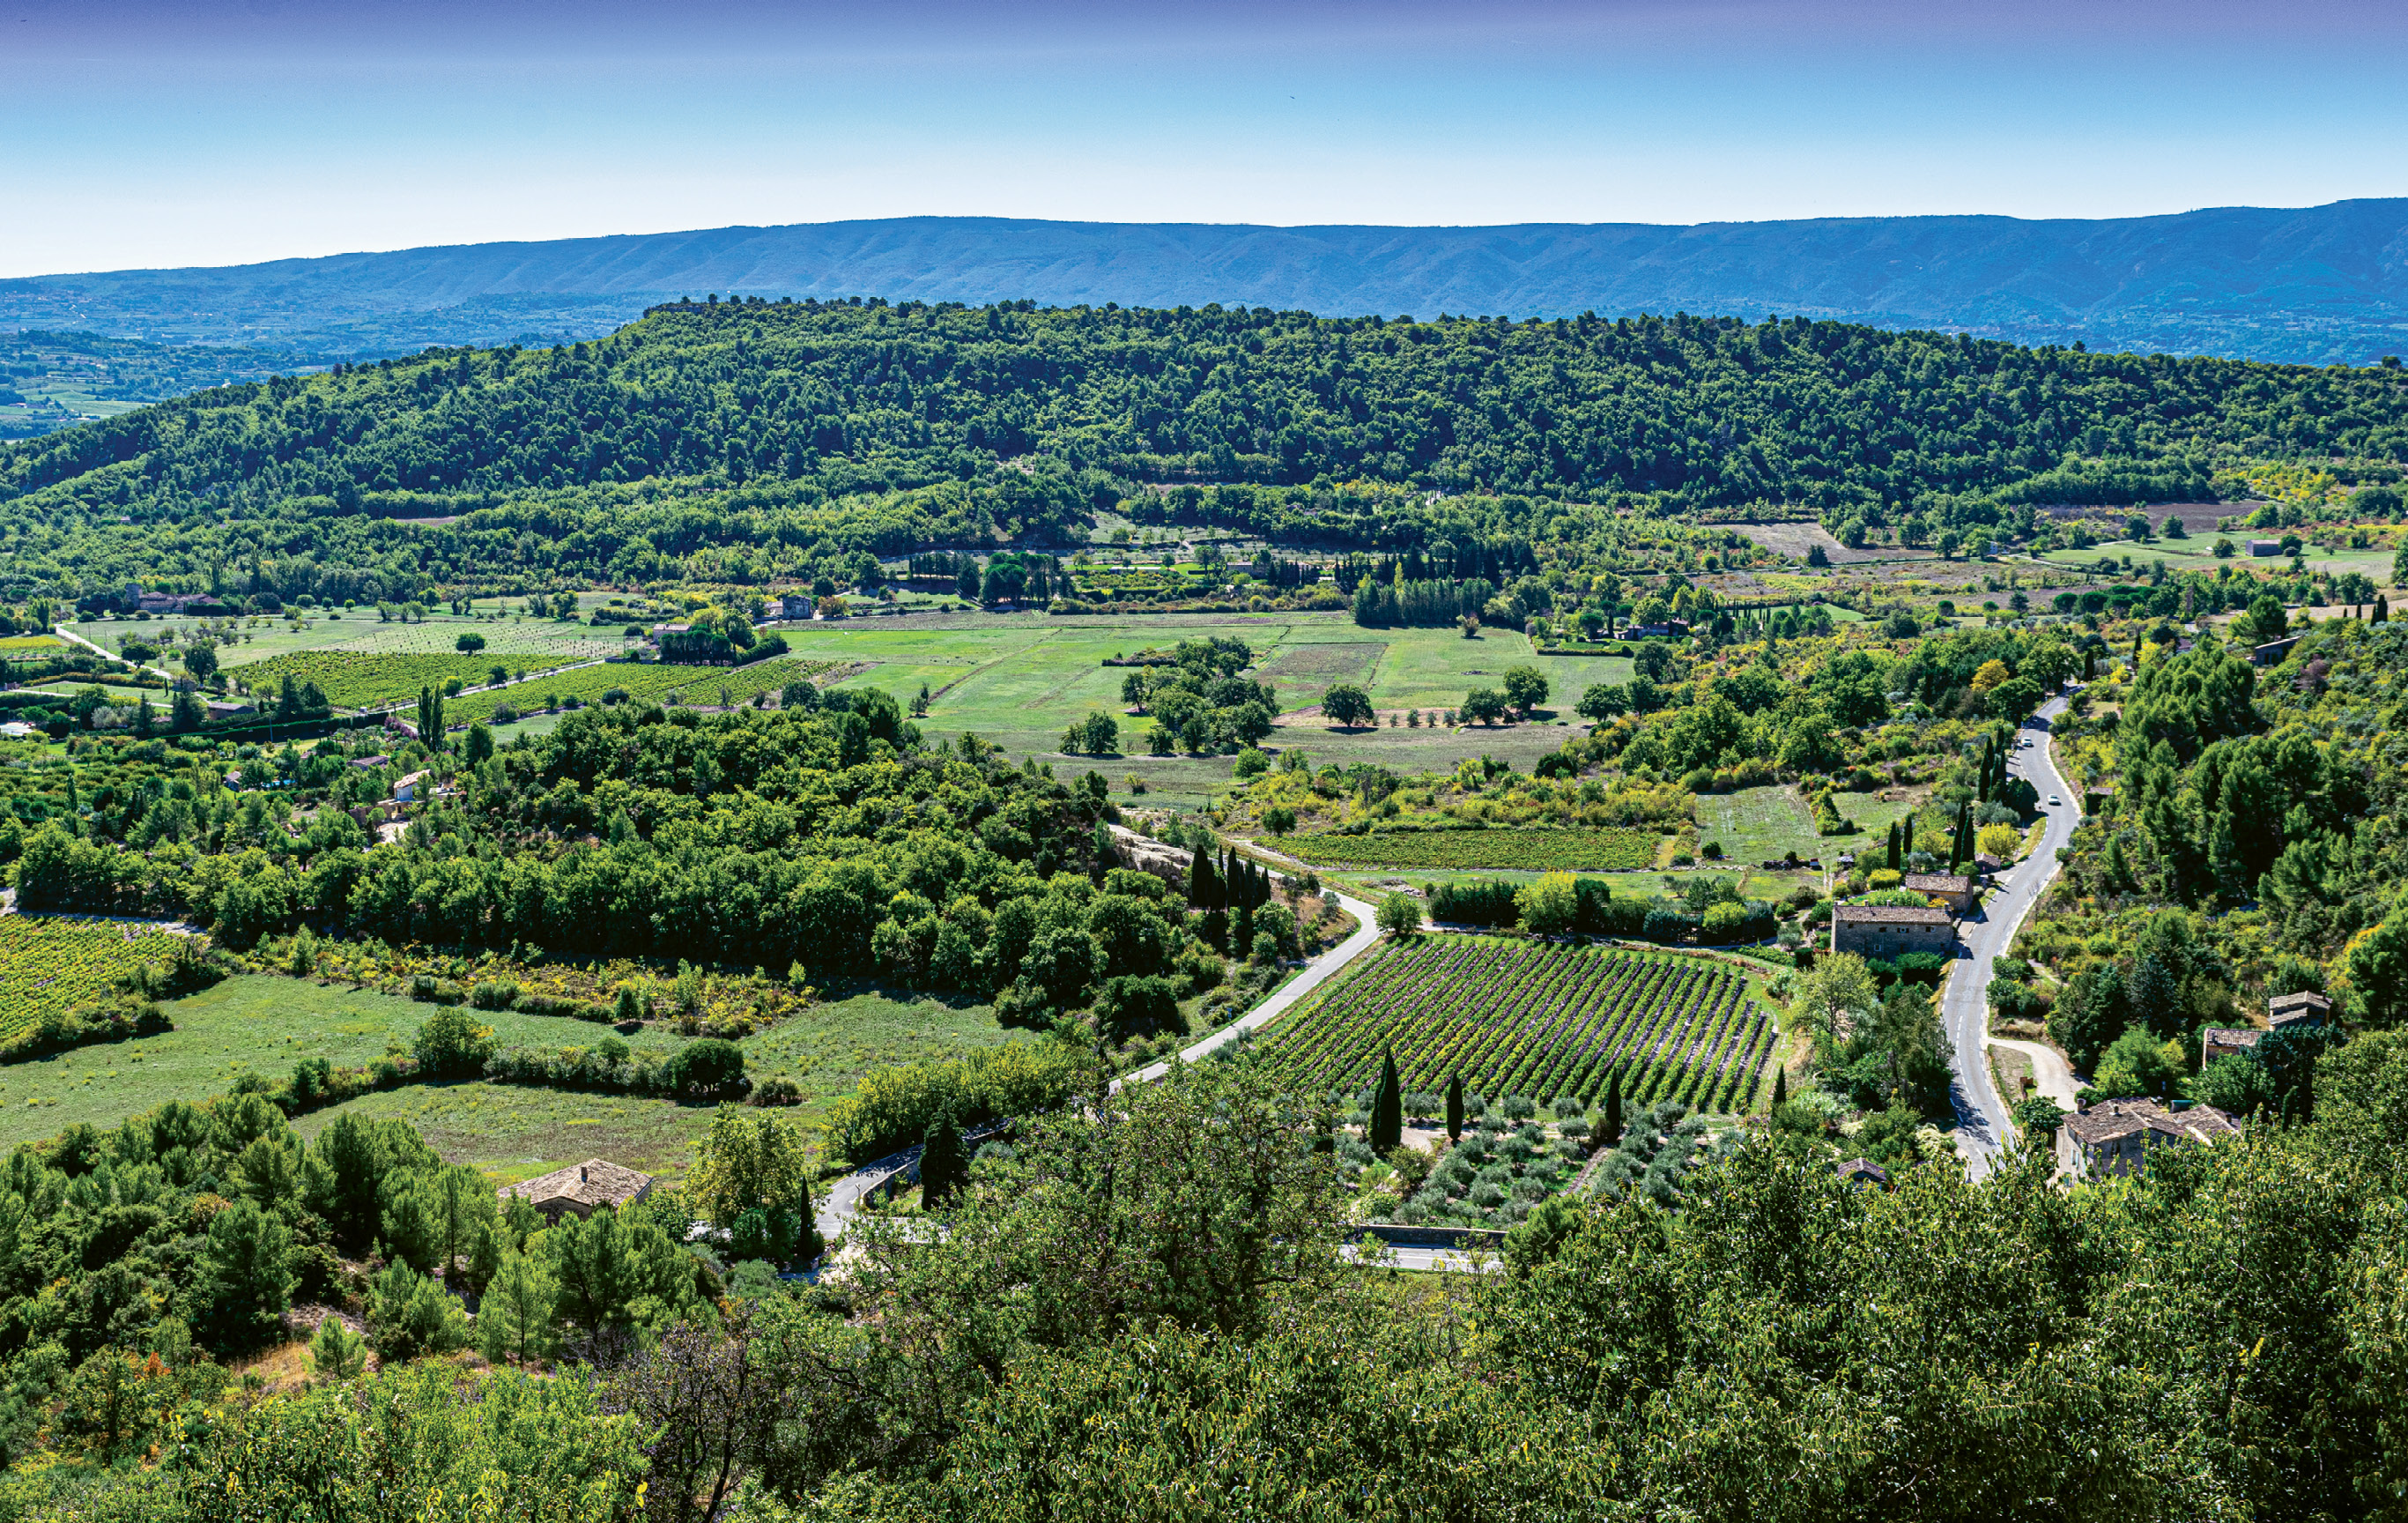 Vineyards, olive groves, and cypress trees were as far as the eye could see in the Luberon.